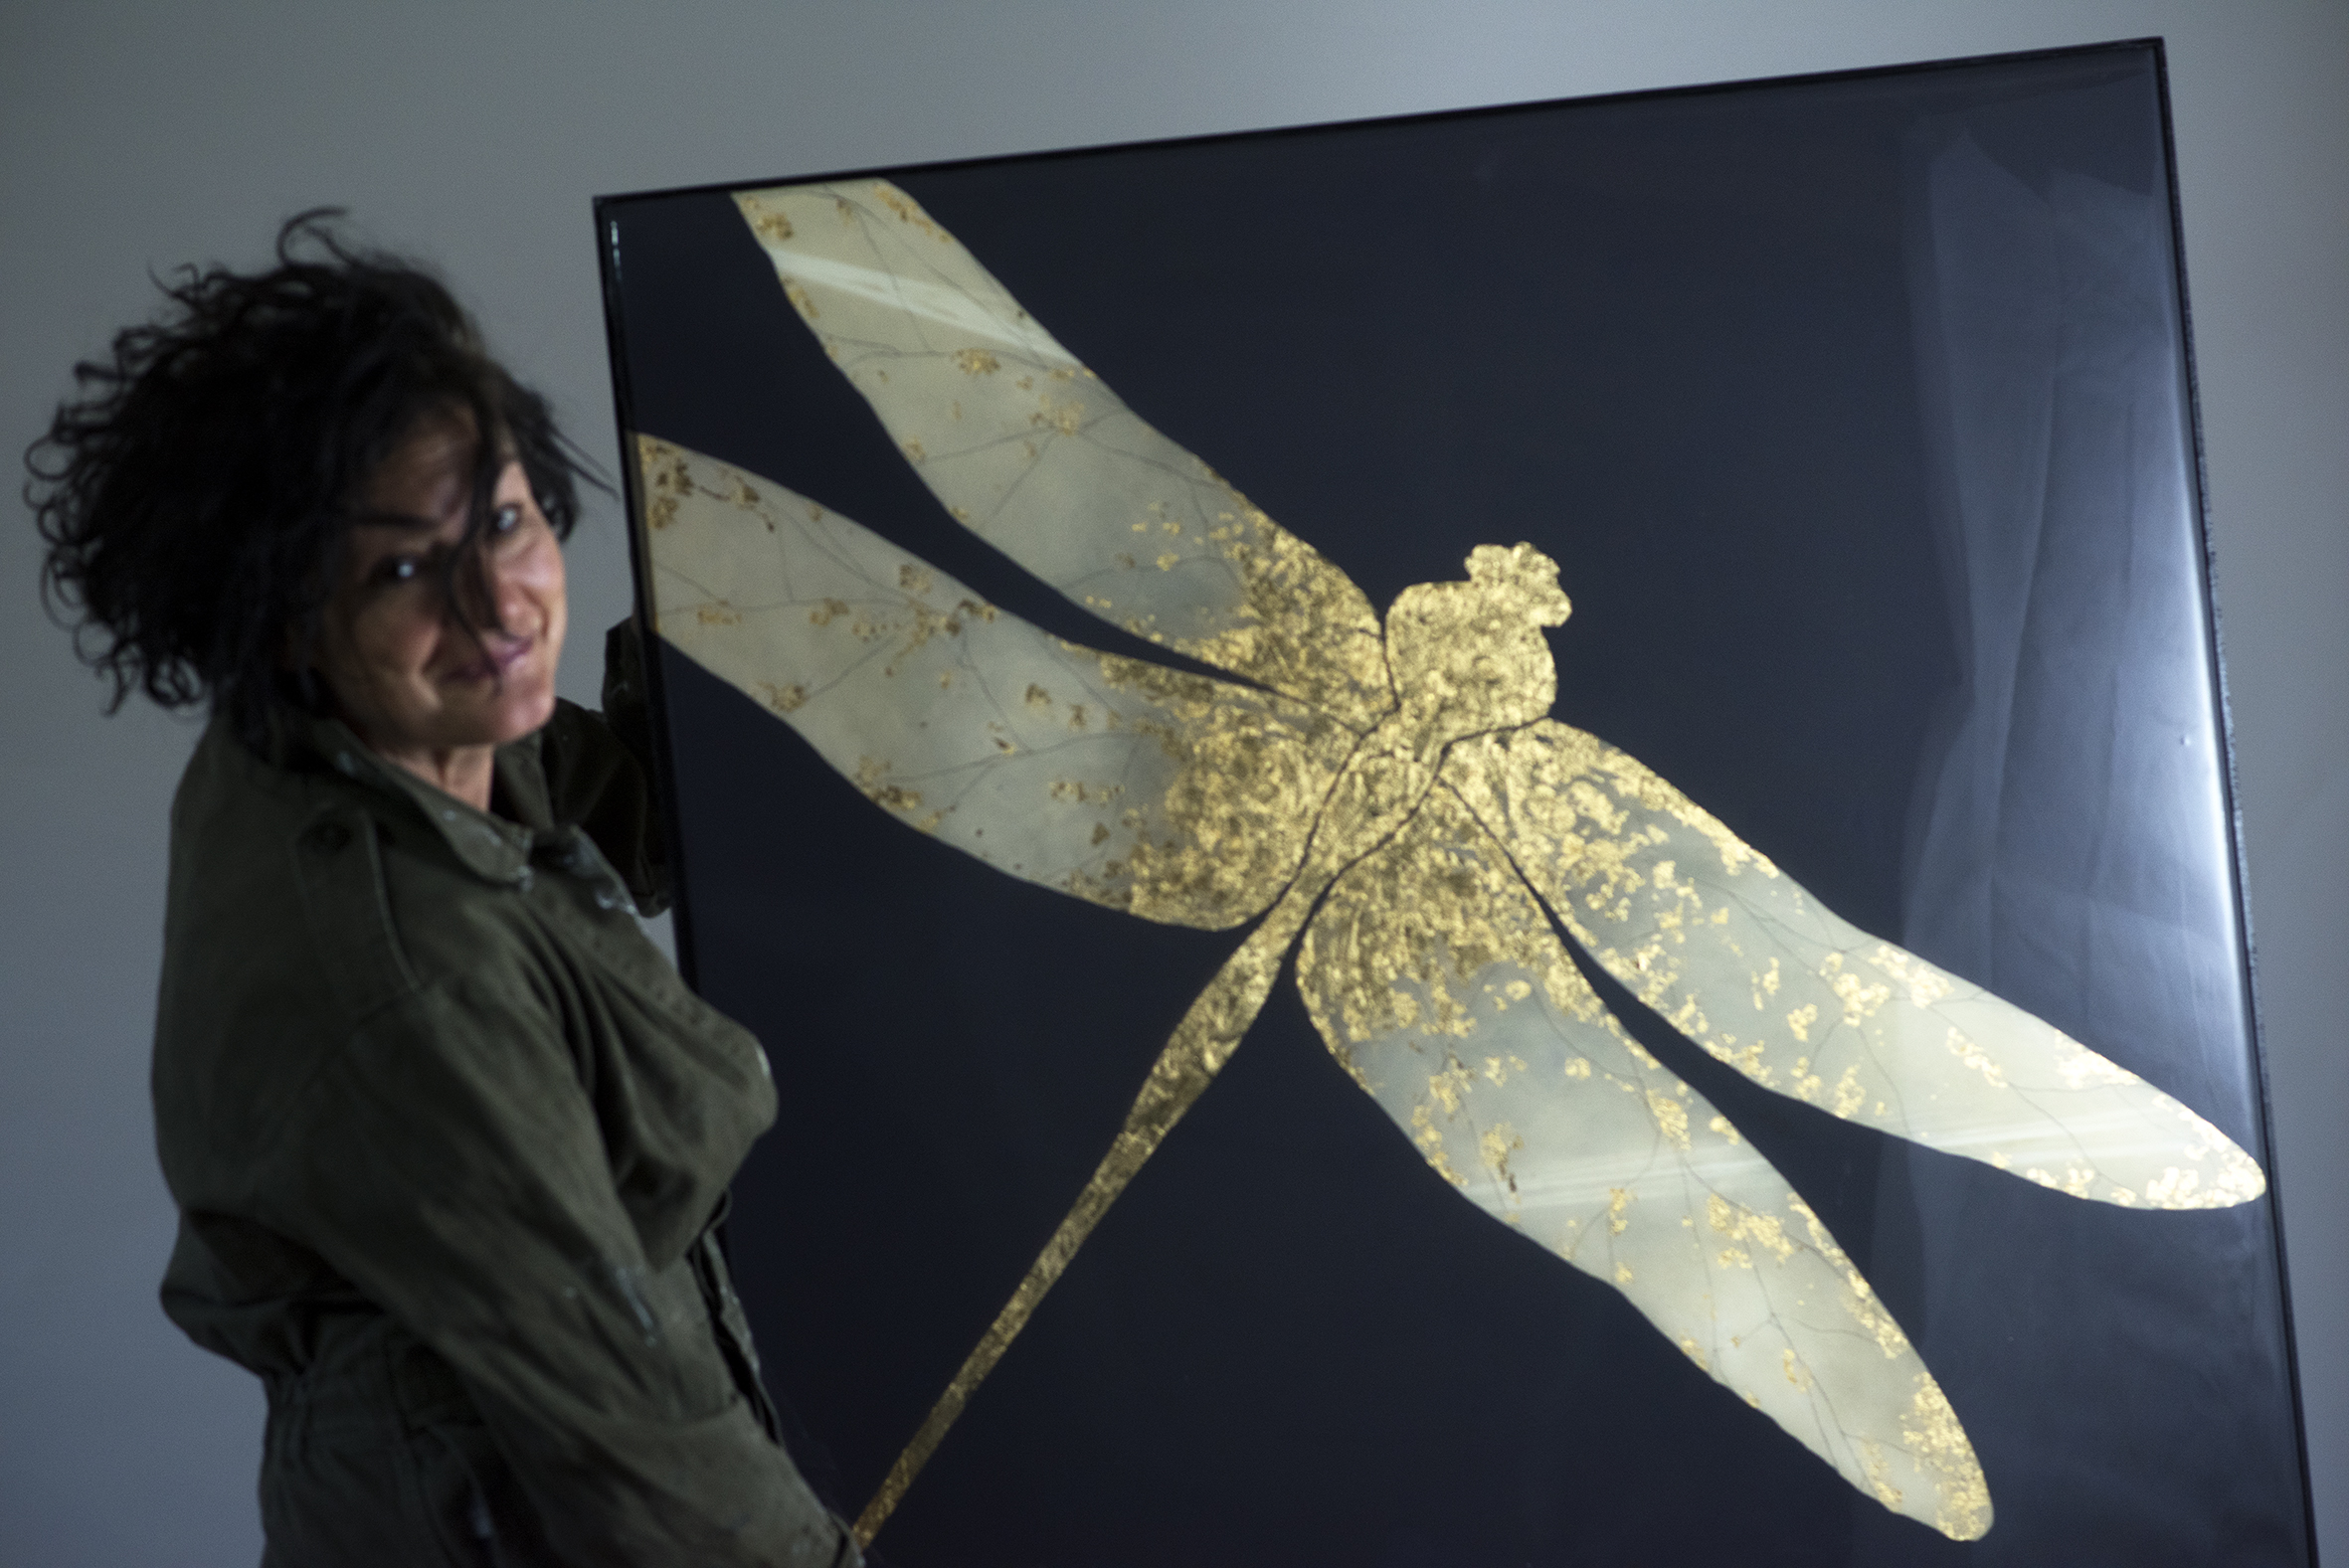 Golden Dragonfly painting. 91x91 cm. Oil on board with gold leaf and gloss resin surface